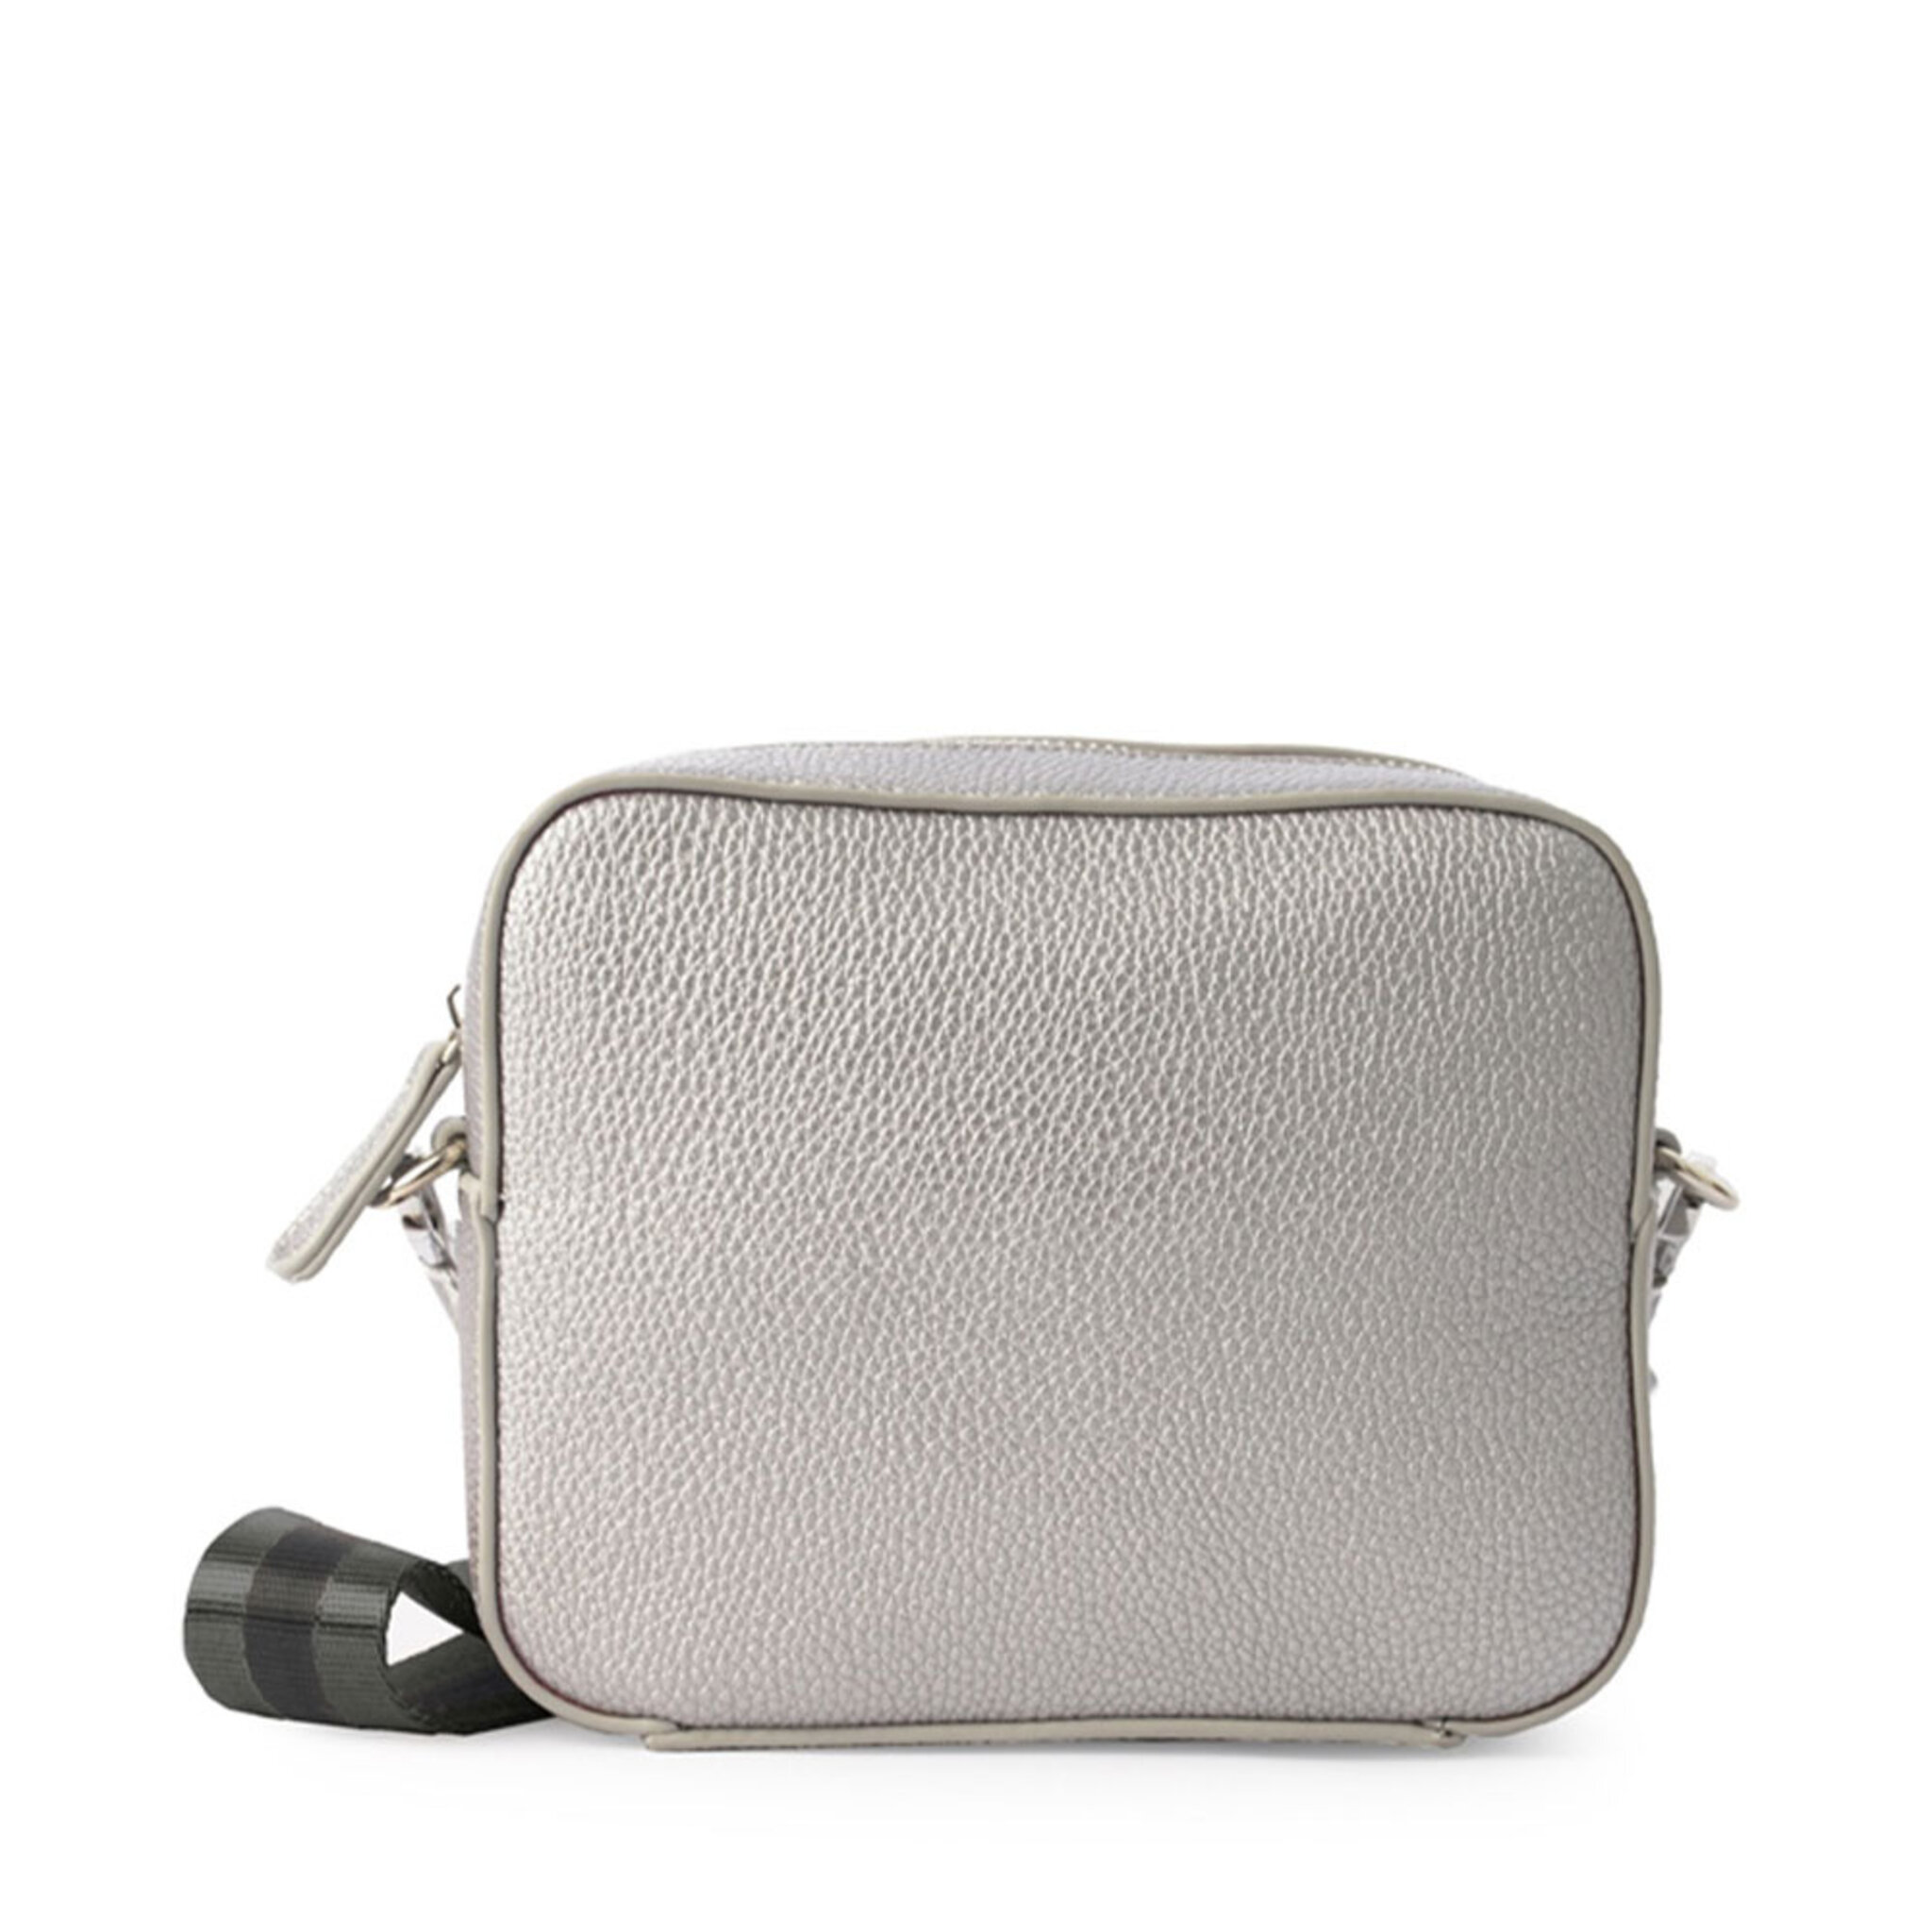 Palermo II Silver, ONE SIZE